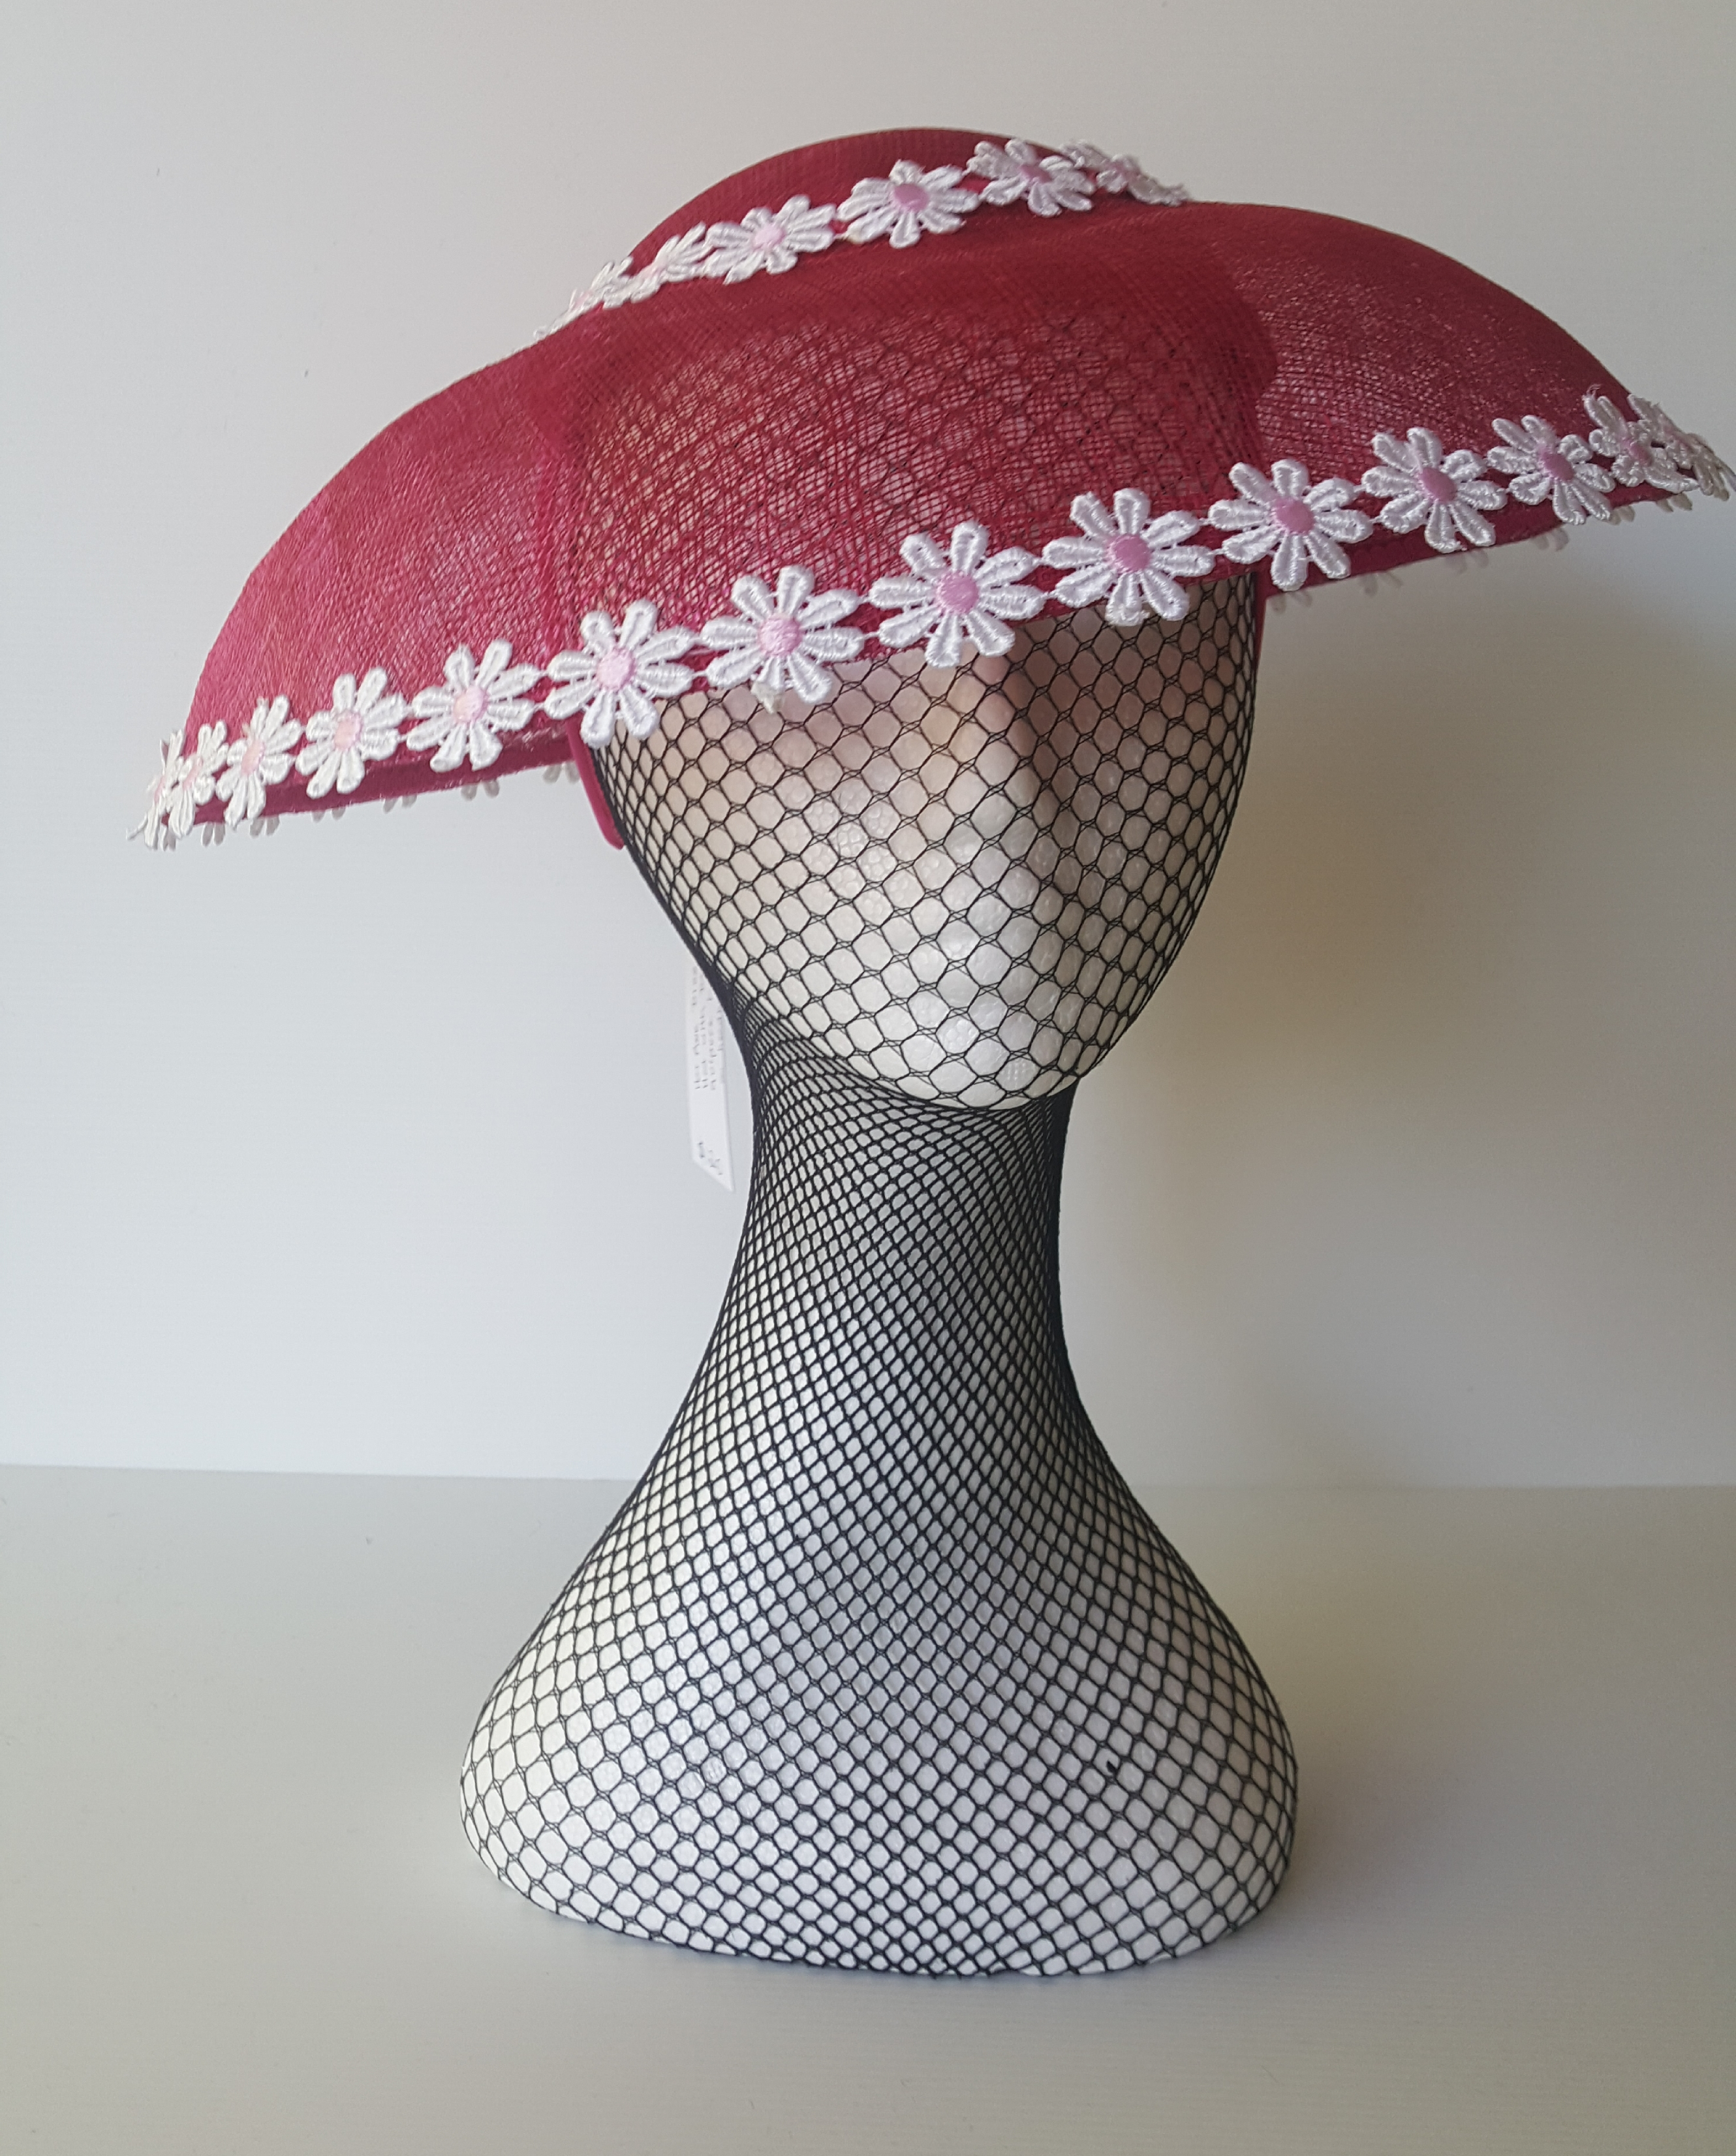 Hot pink sinamay dior brim with daisy lace trim